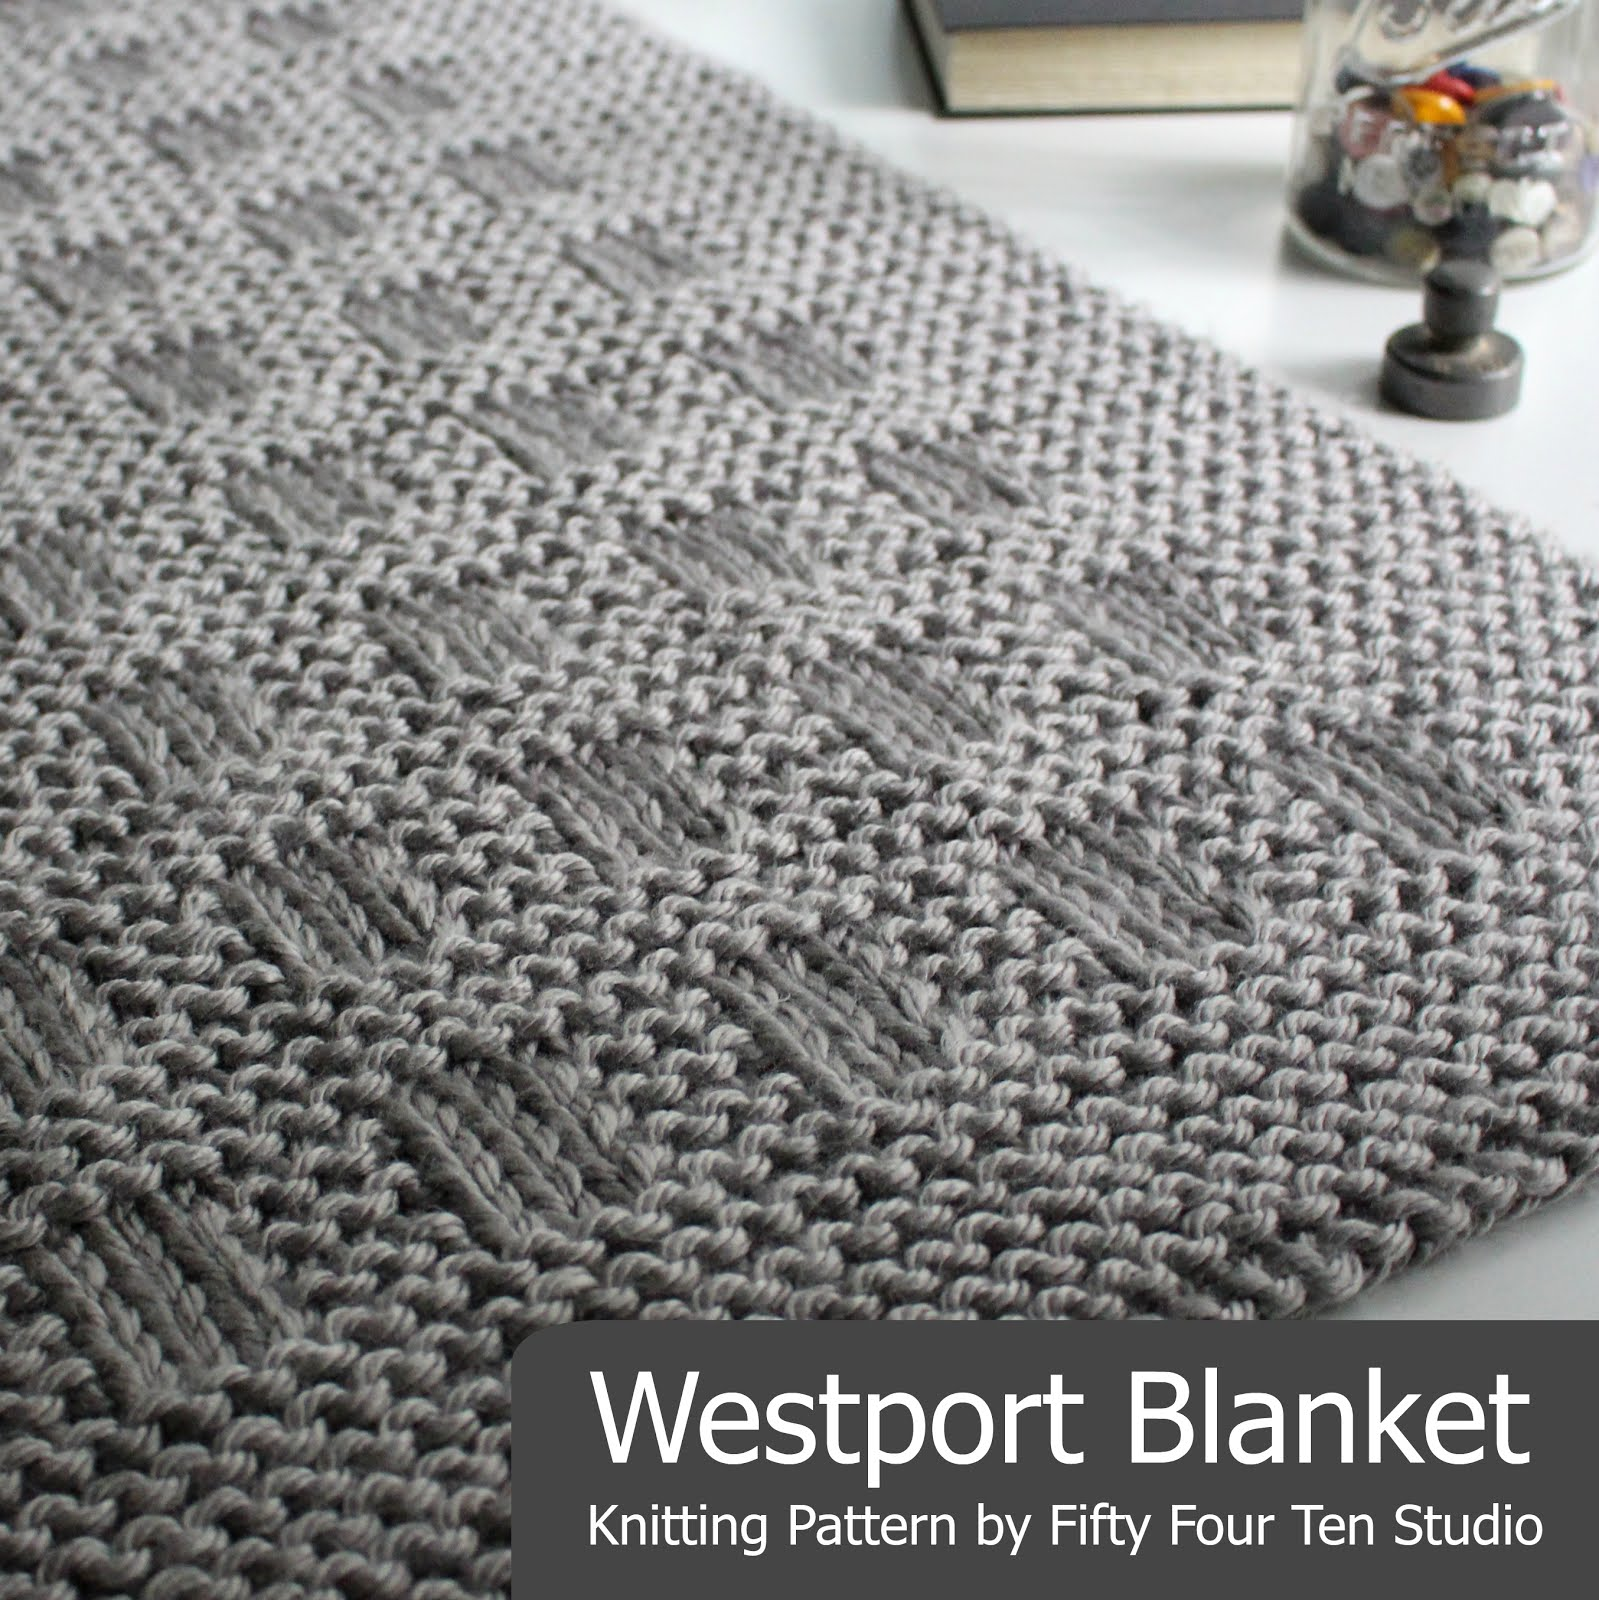 Fifty Four Ten Studio: New Chunky Blanket Knitting Pattern: Over the